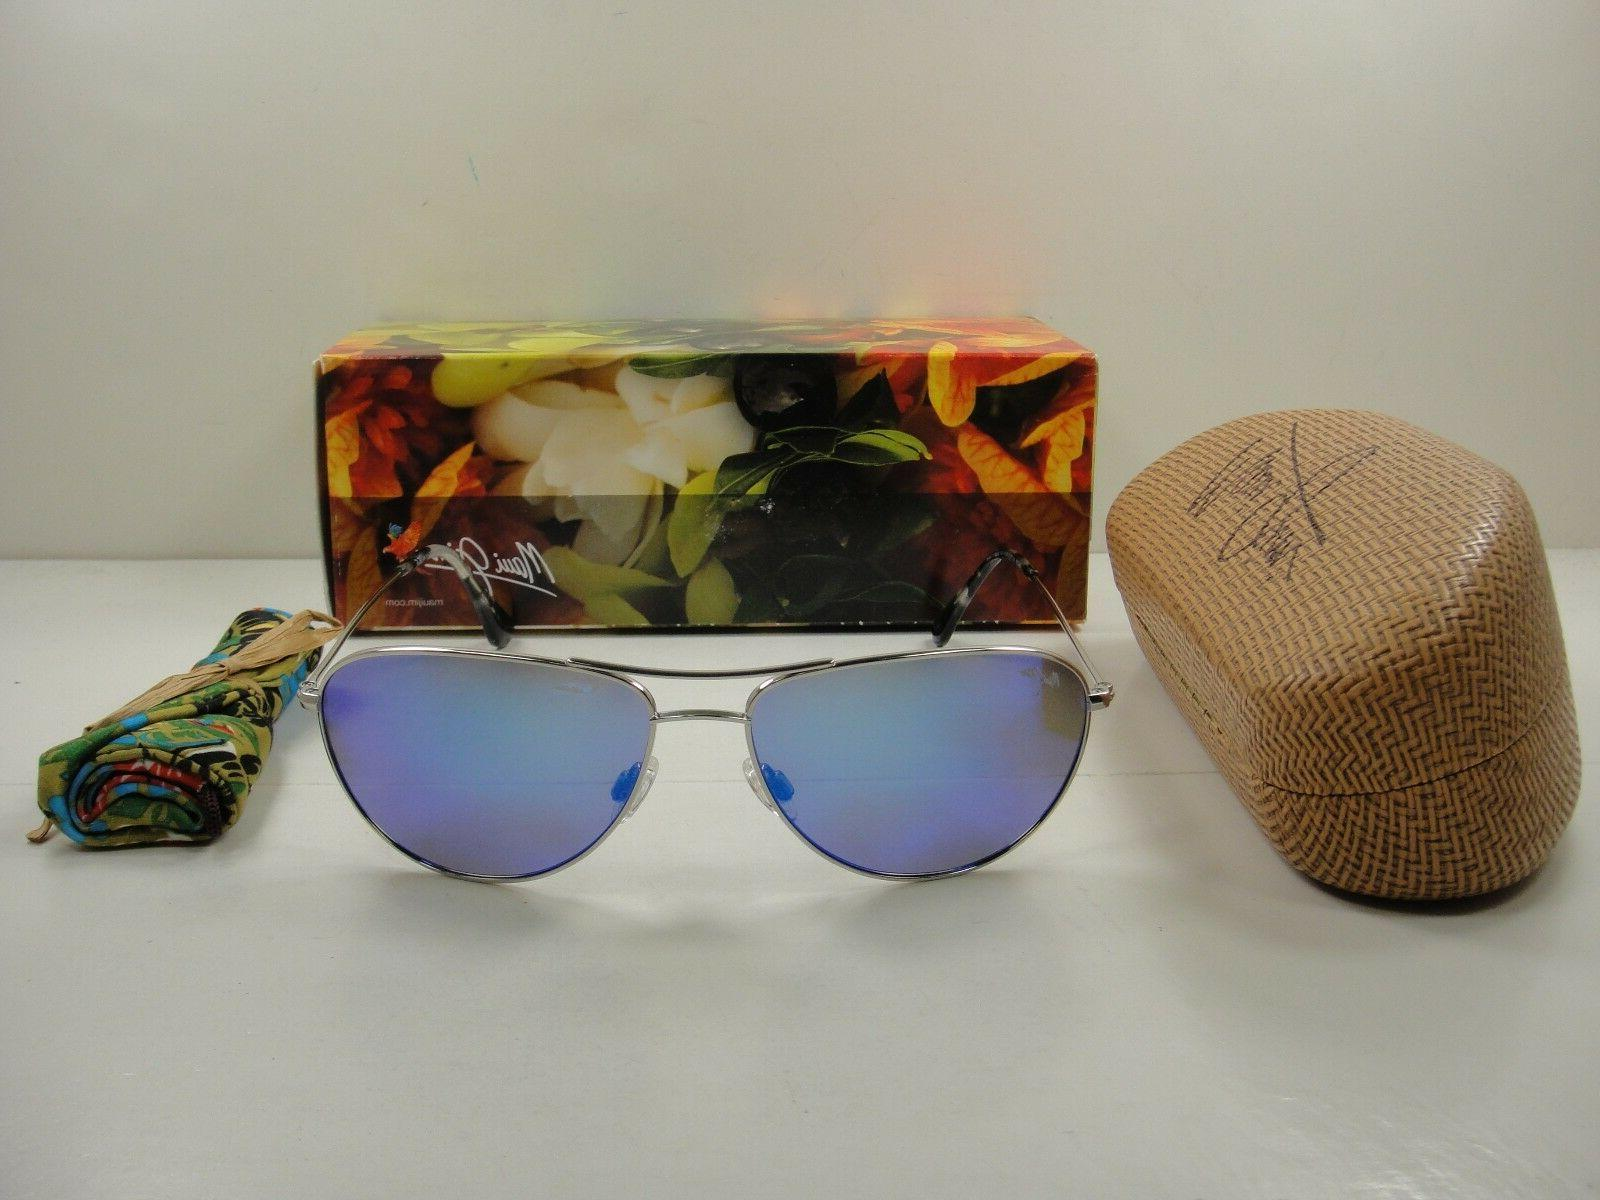 sea house polarized b772 17 sunglasses silver